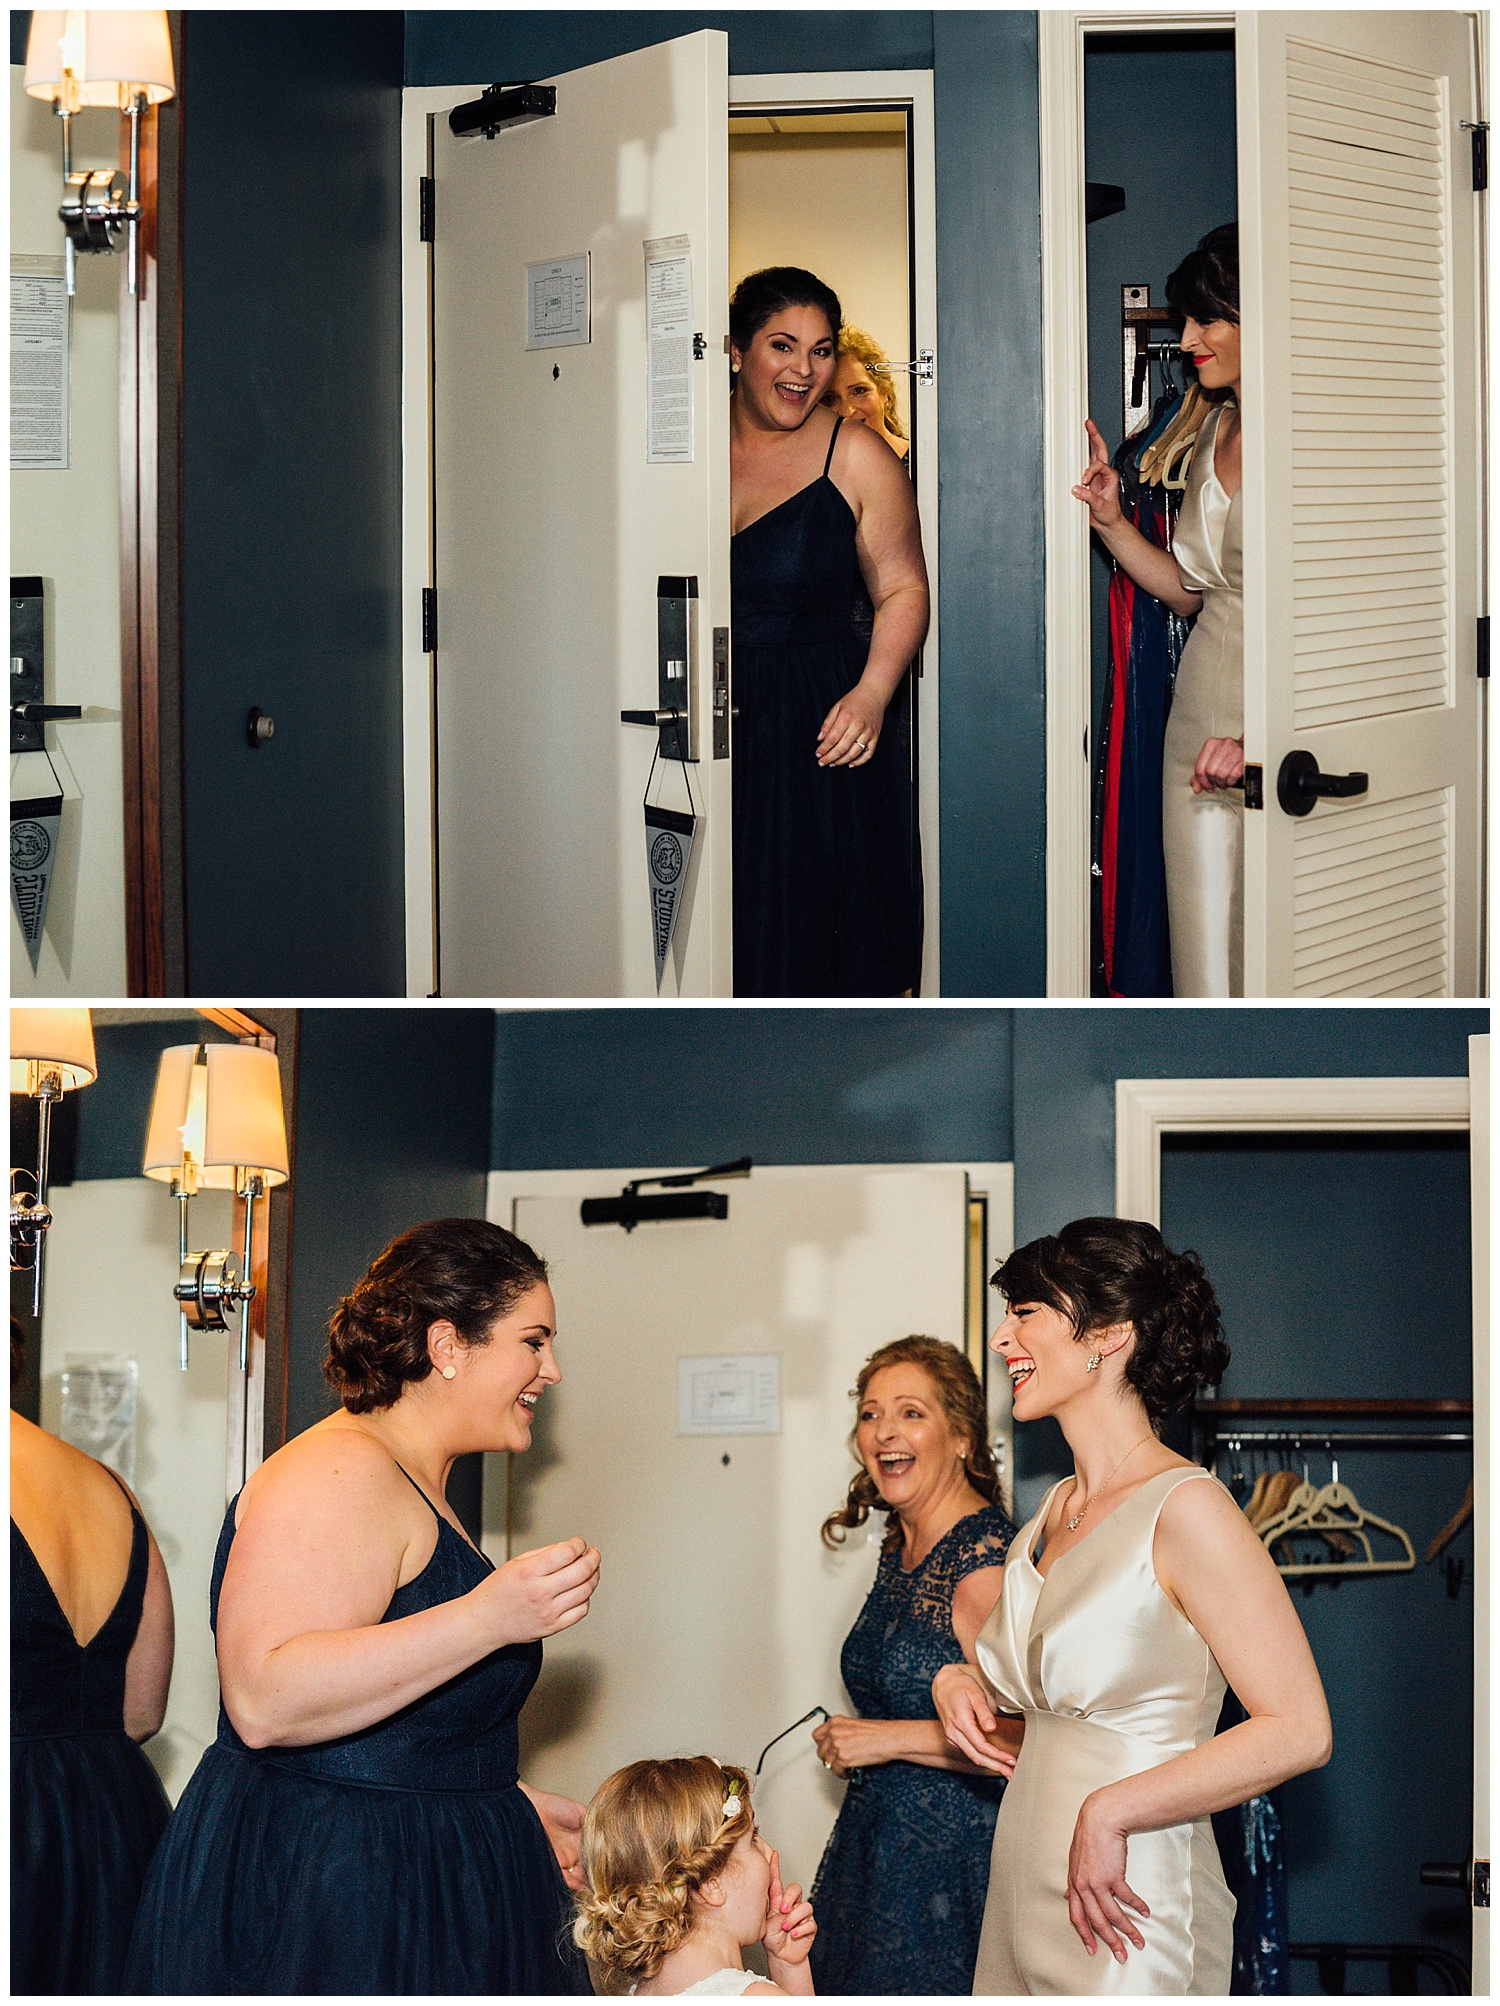 Graduate-Boutique-Hotel-Richmond-Bride-Reveal-GettingReady5.jpg